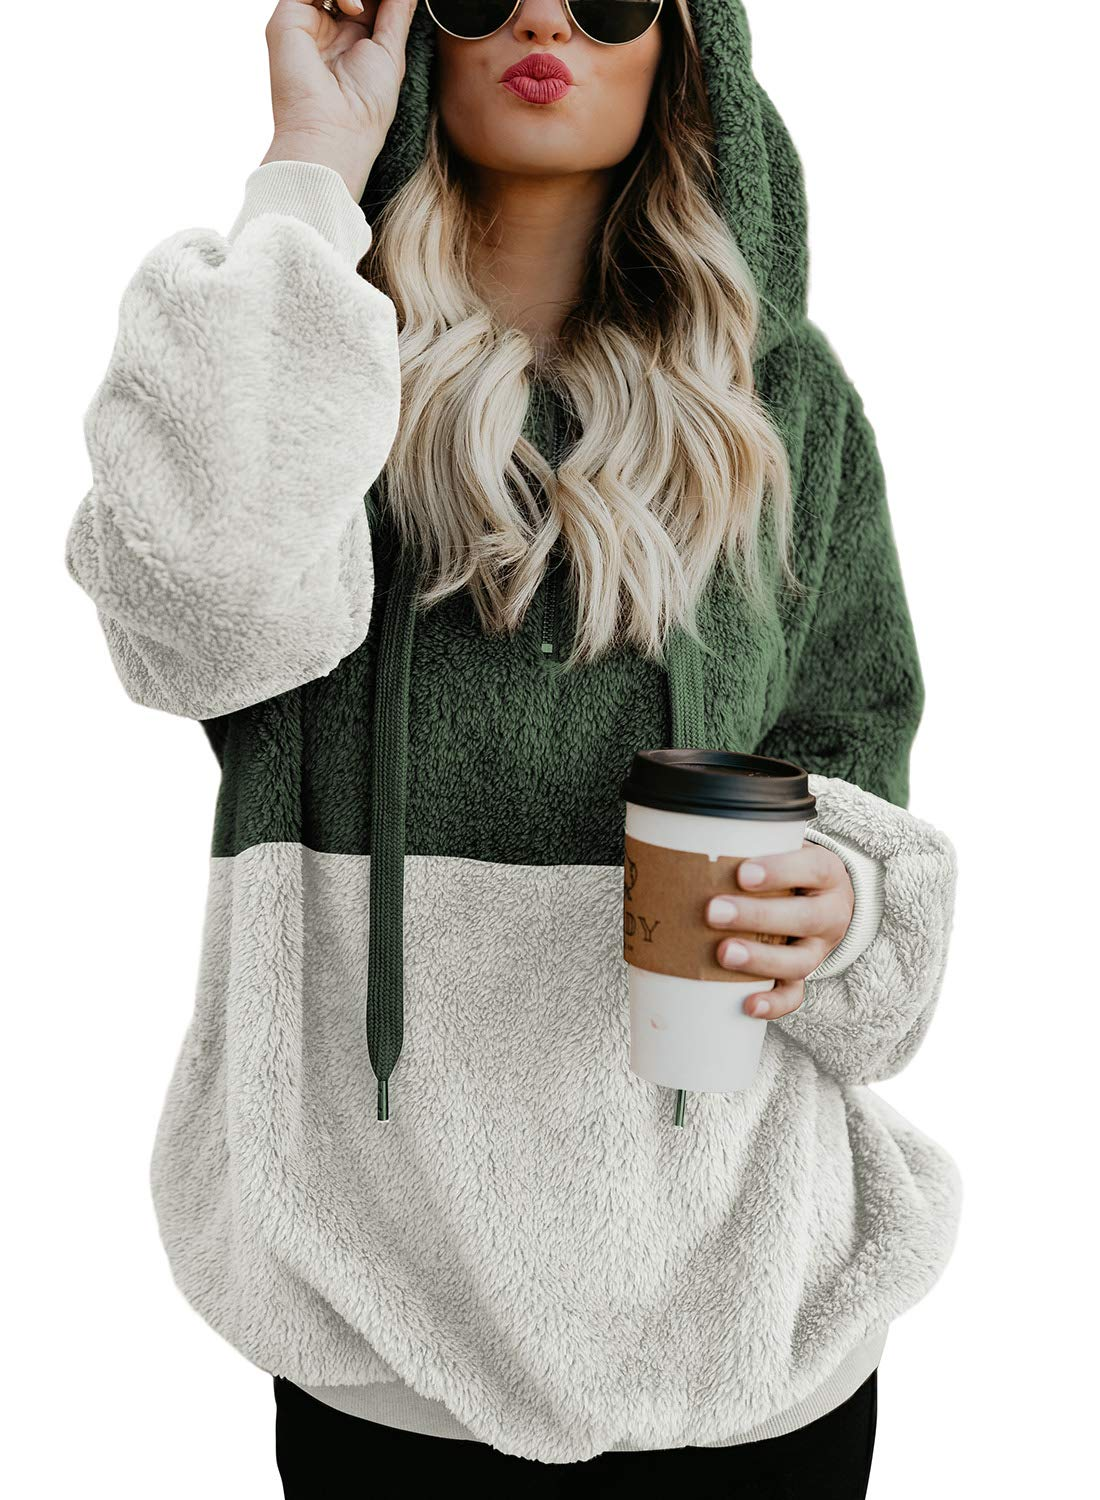 Dokotoo Womens Fashion Hoodies Casual Cozy Chunky Color Block Autumn Loose Fuzzy Sweatshirt Loose Sweater Outwear with Pockets Medium